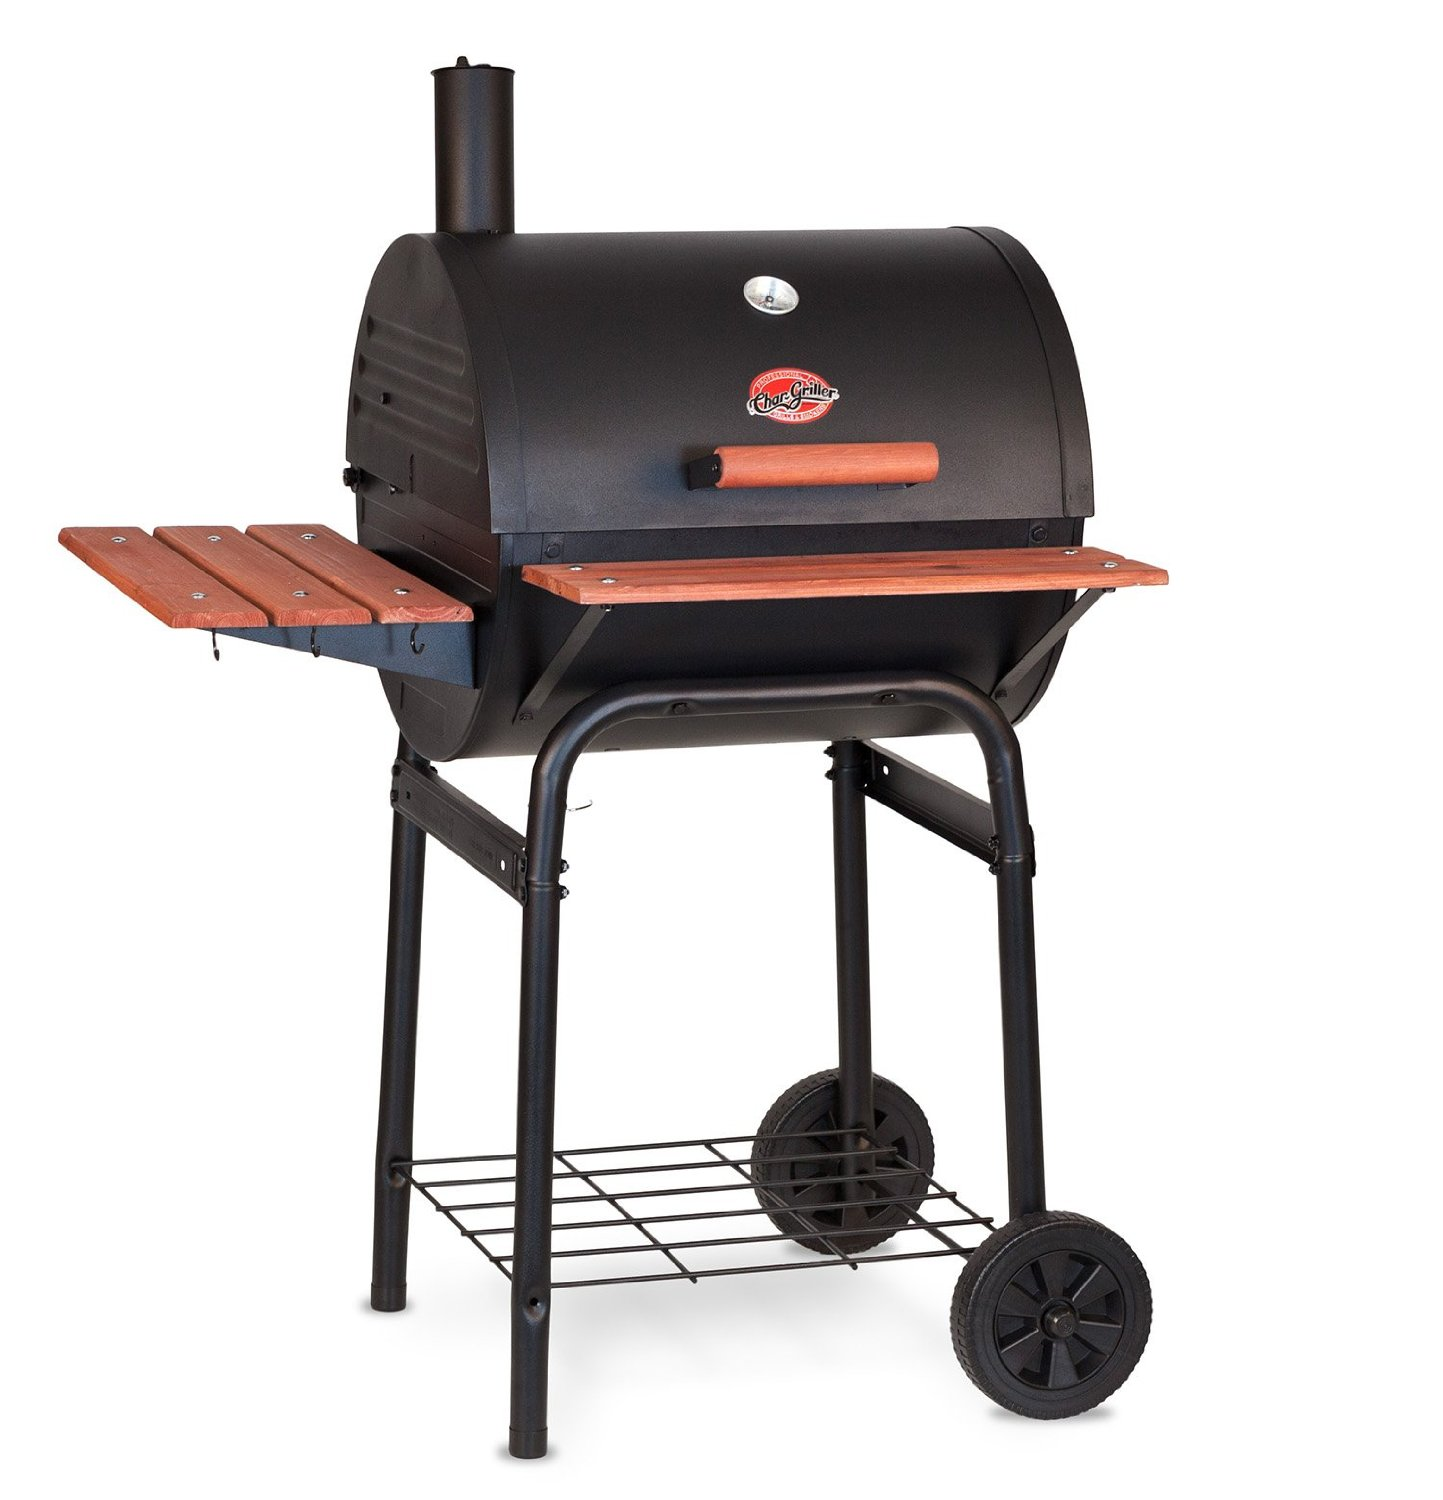 71Fy45ya 8L. SL1500 10 Best Charcoal Grills 2021 - Home & Outdoor Charcoal Grill Reviews